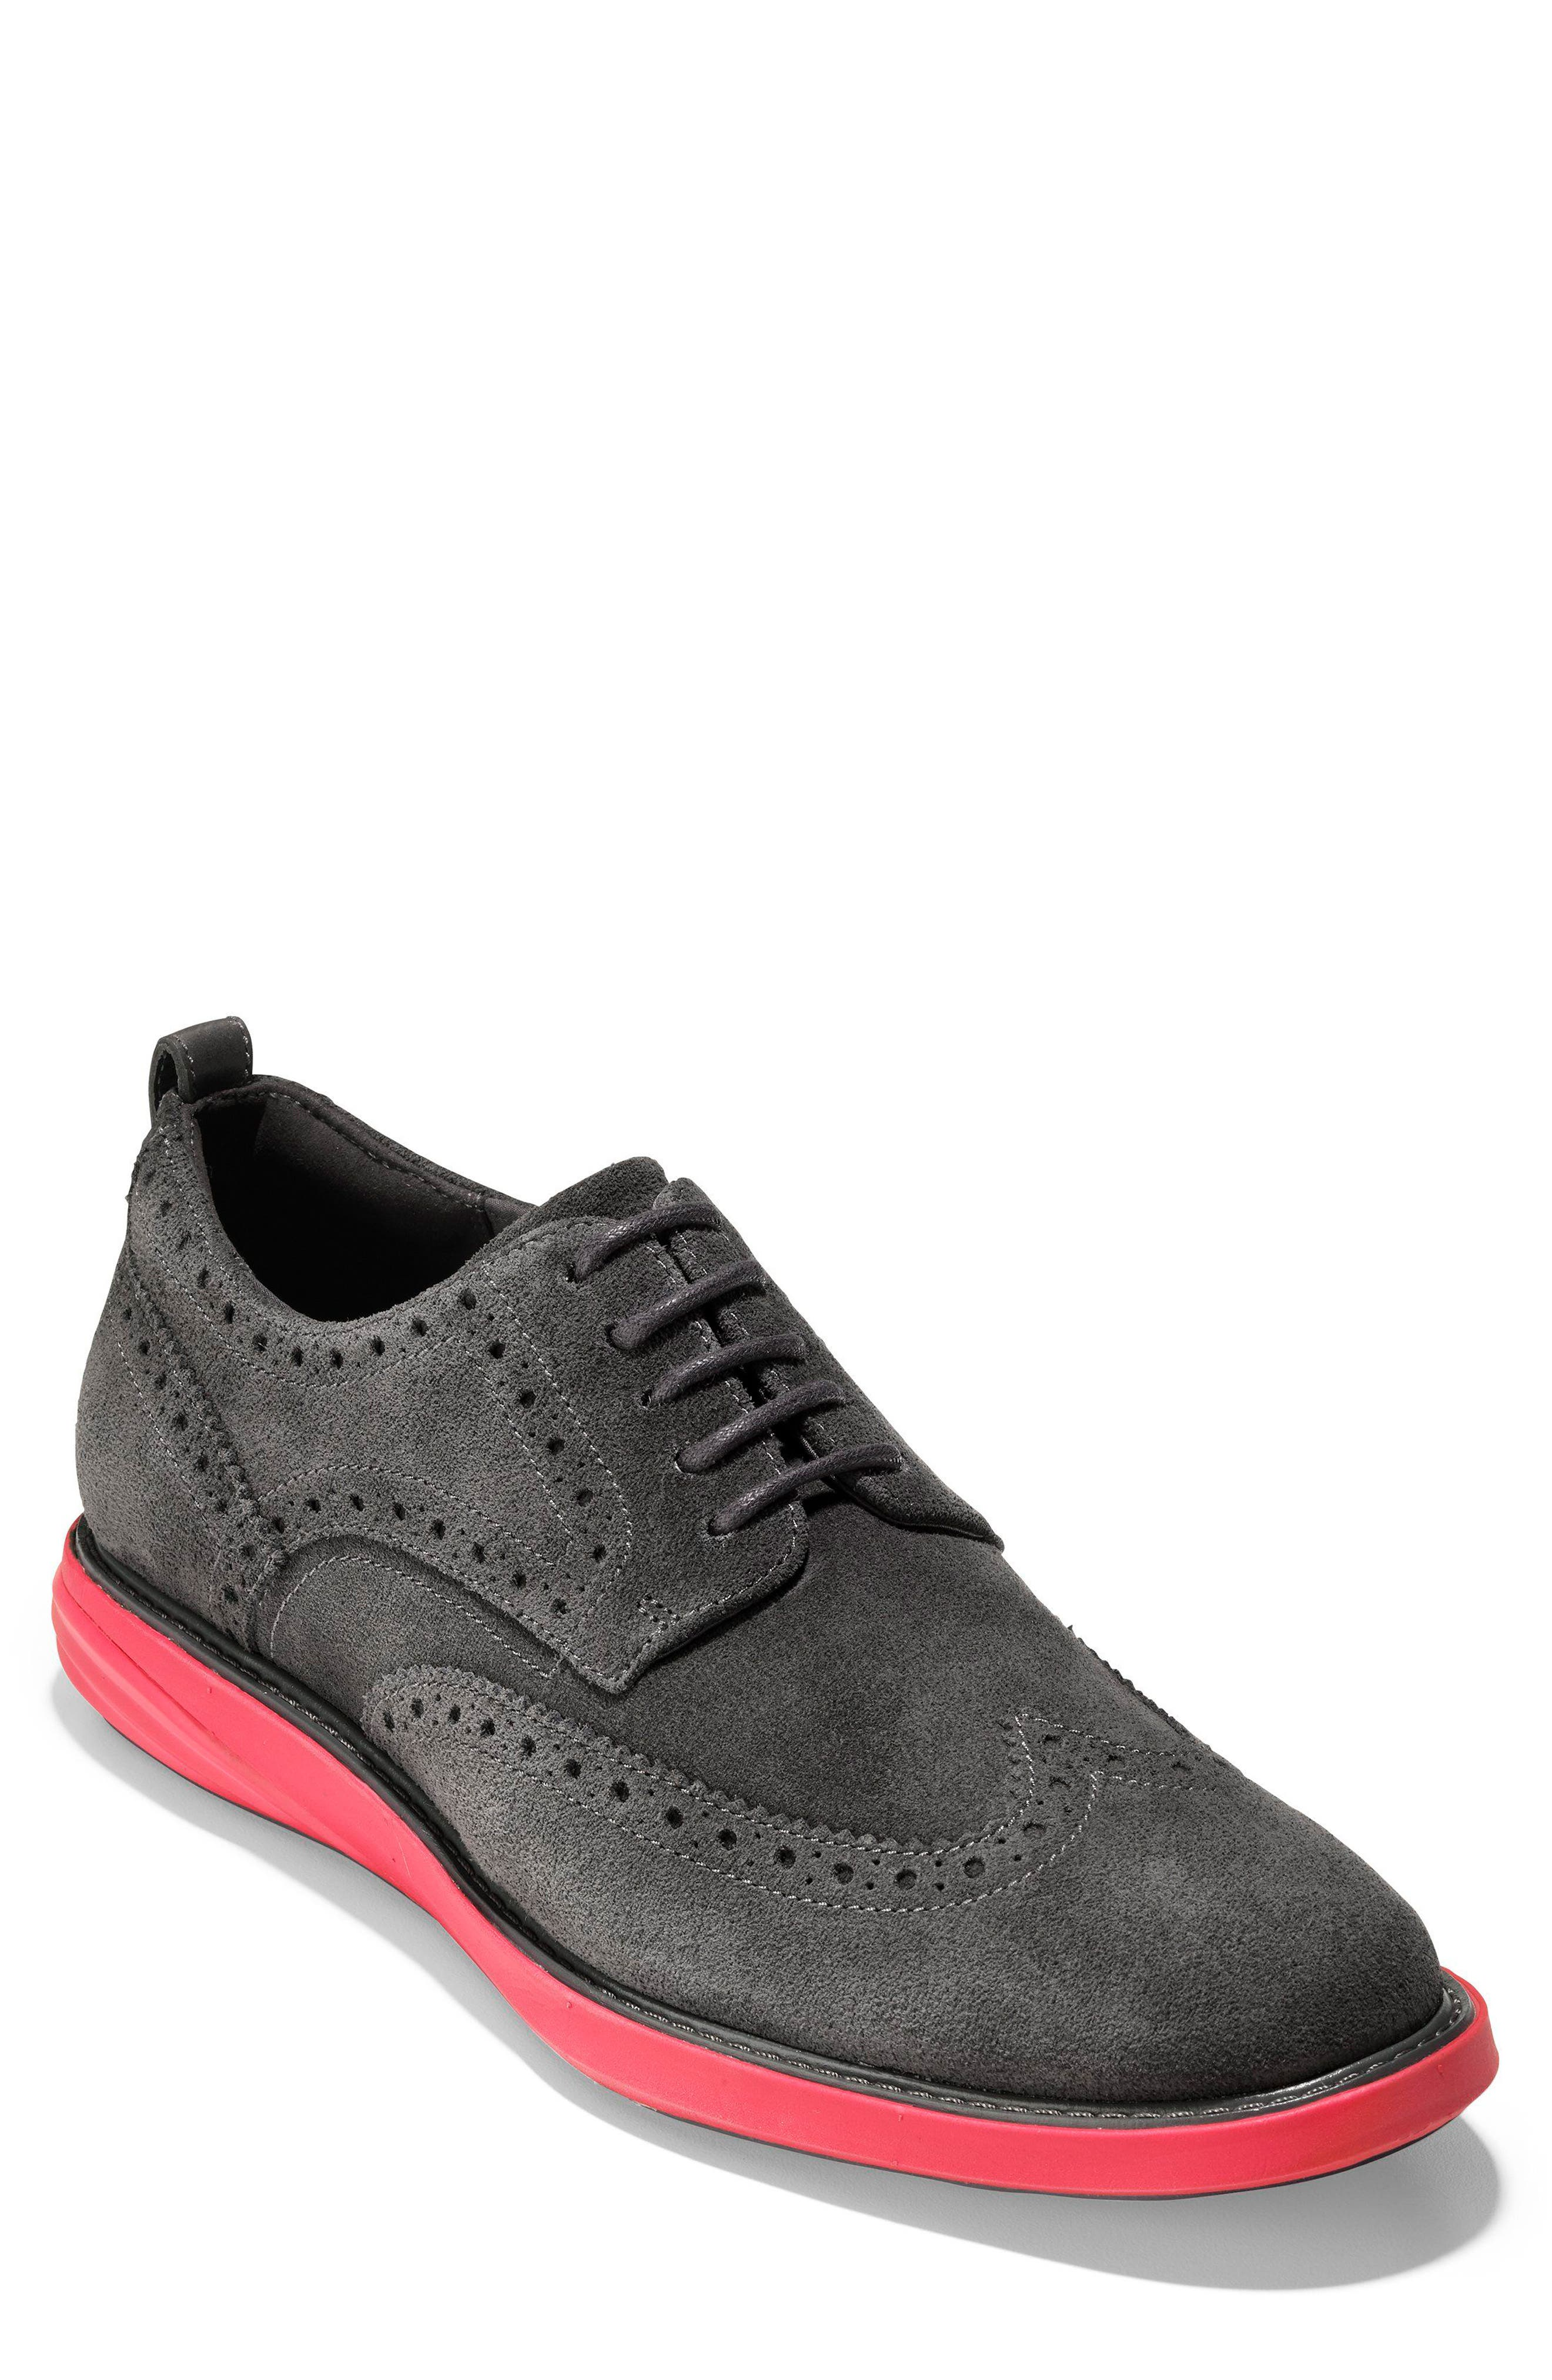 Grand Evolution Wingtip,                             Main thumbnail 2, color,